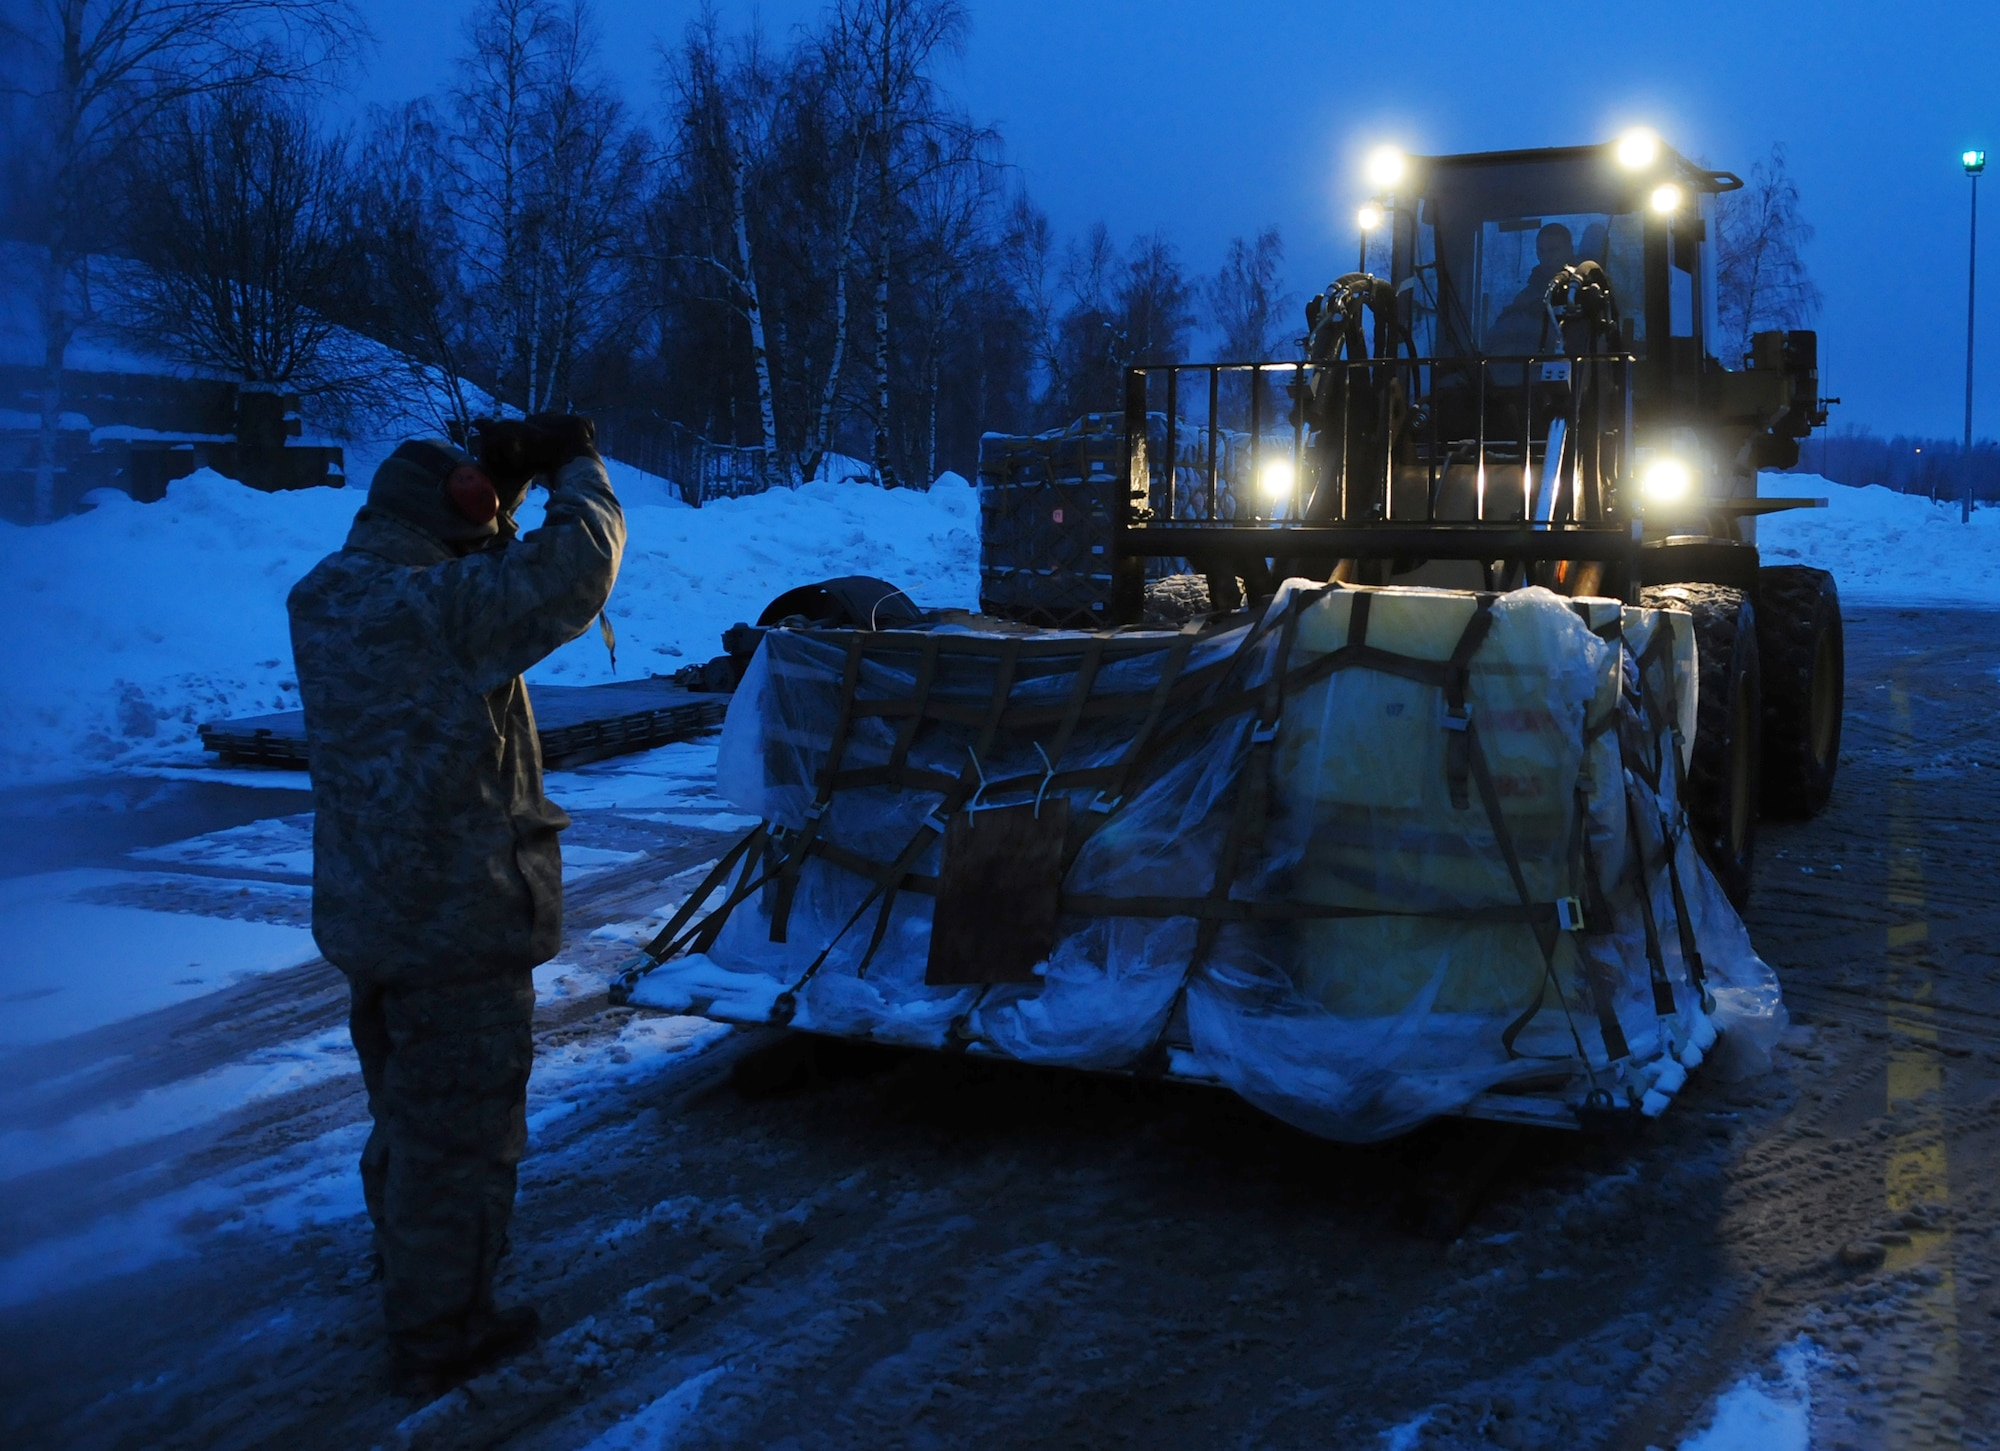 Tech. Sgt. Carlos Cardenas guides a forklift being driven by Senior Airman Scott Knight Jan. 7, 2011, at Lithuania Air Force Air Base in Lithuania. Sergeant Cardenas and Airman Knight are assigned to the 493rd Expeditionary Fighter Squadron Redeployment Action Team at Royal Air Force Lakenheath, England. (U.S. Air Force photo/Staff Sgt. Stephen Linch)